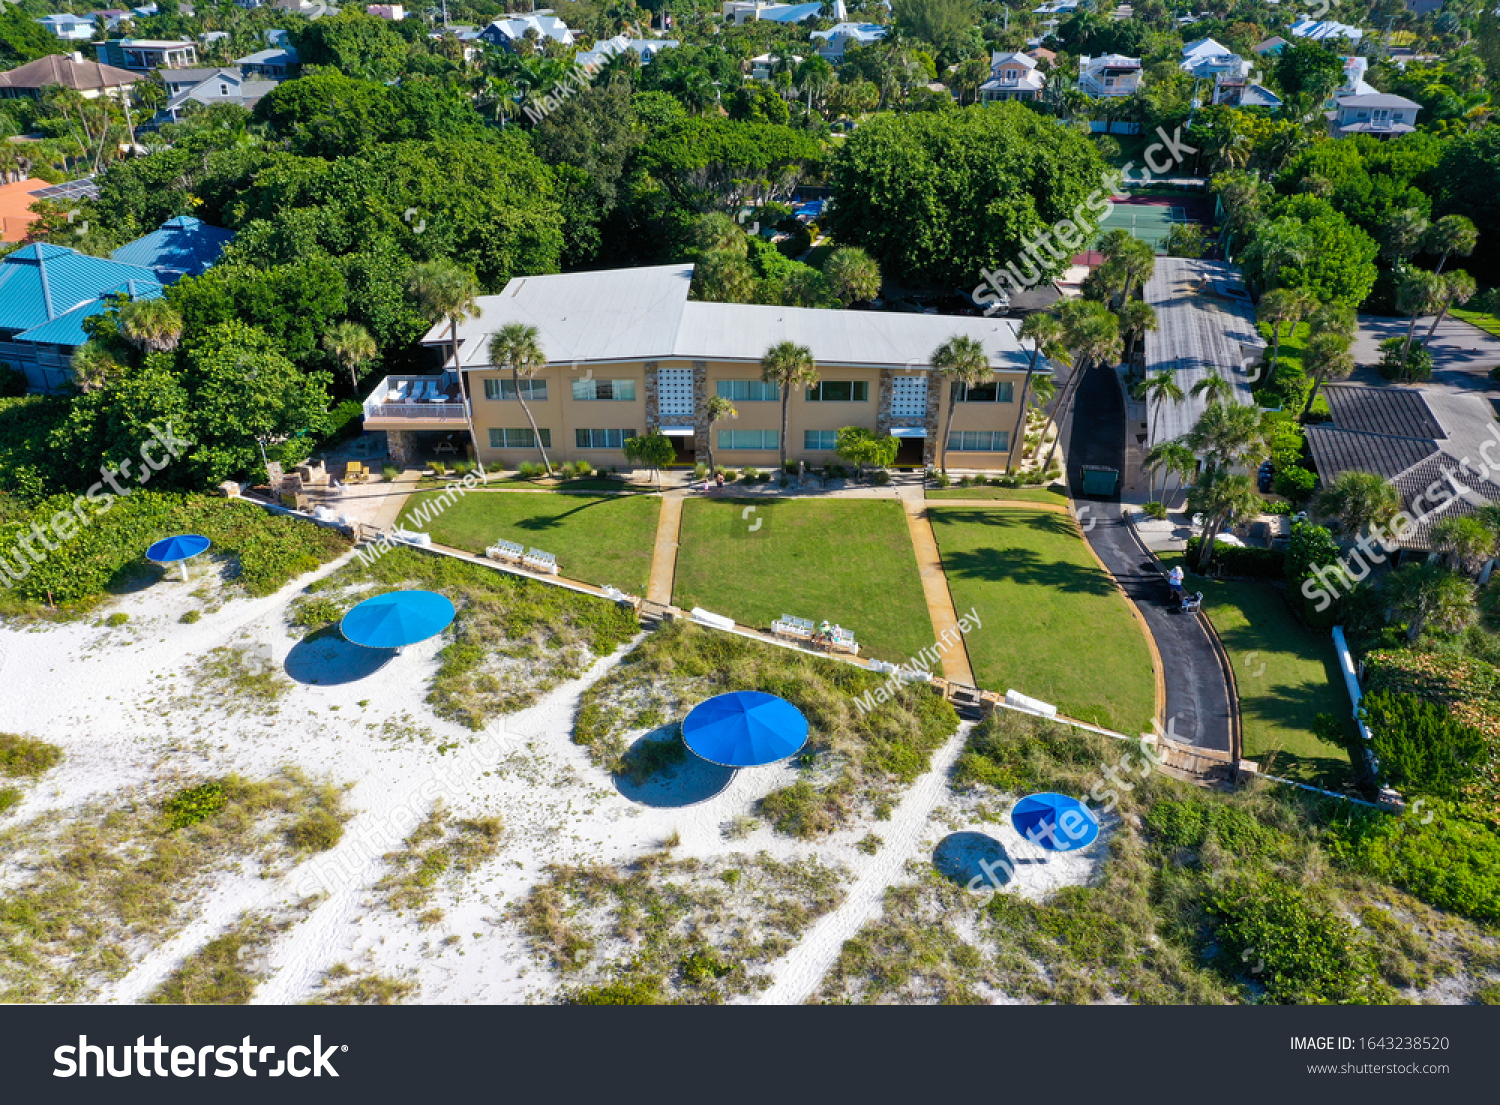 ANNA MARIA ISLAND, FL / USA - September 23, 2019: LayBy Resort on Holmes Beach Fl. is a beach front property reportedly sold to Country Music Superstars Garth Brooks and his wife, Trisha Yearwood